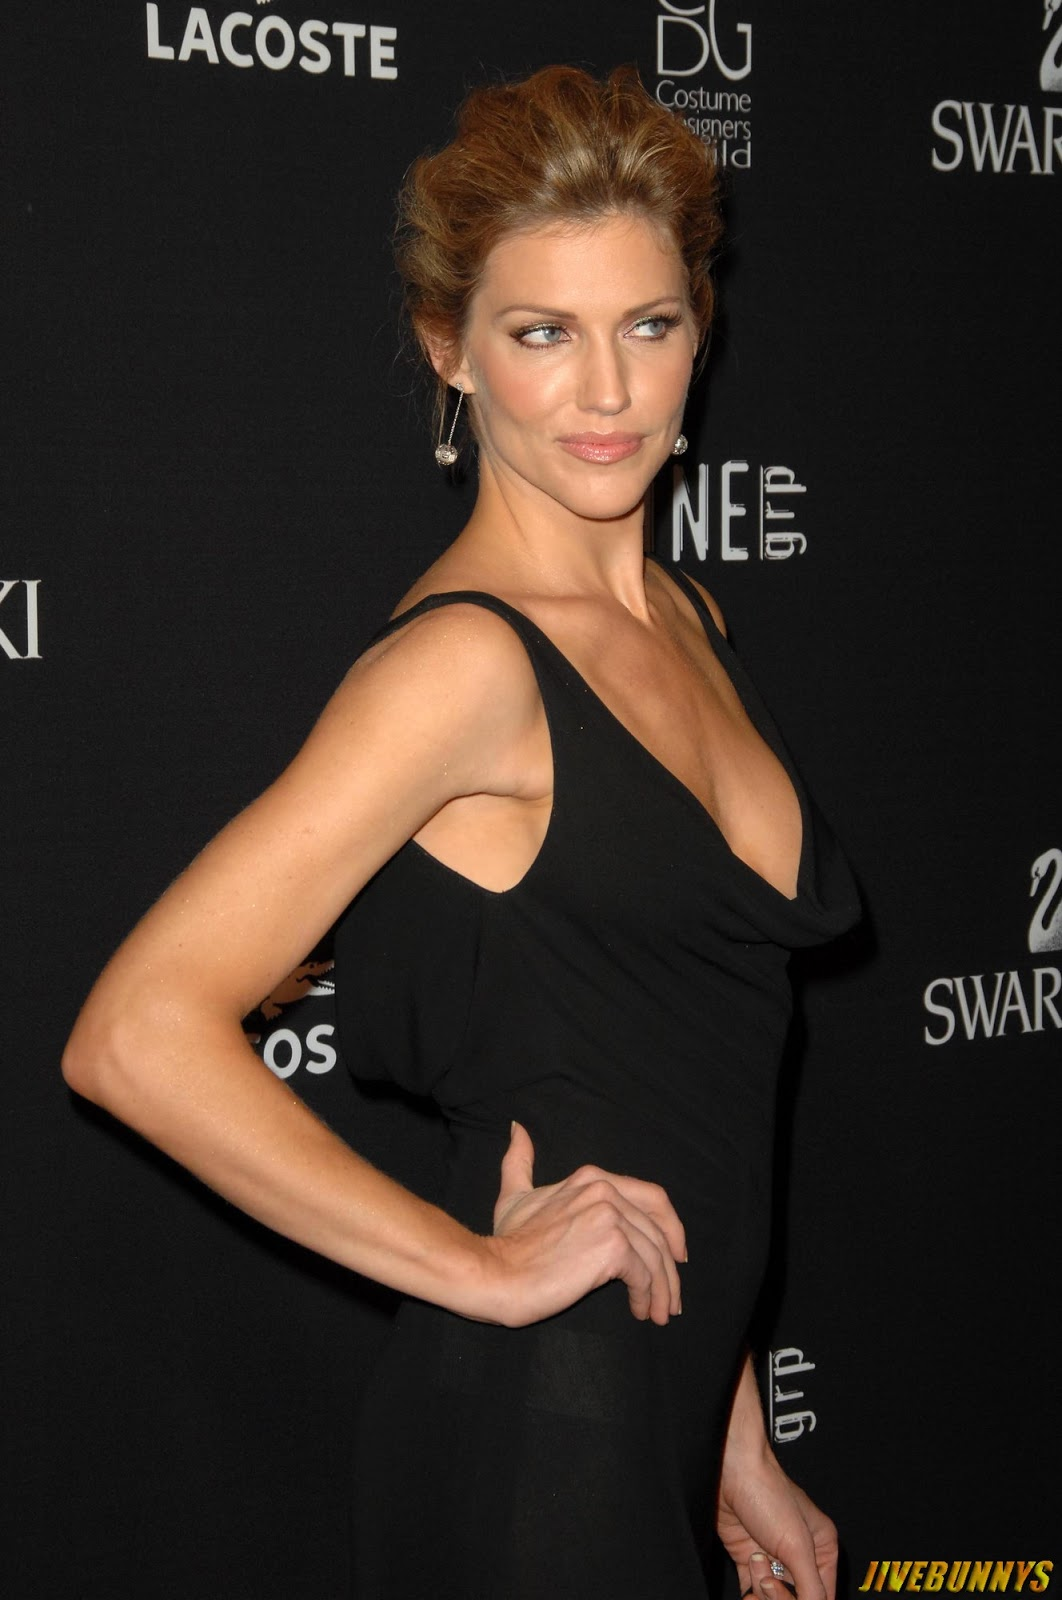 Jivebunnys Female Celebrity Picture Gallery: Tricia Helfer Canadian ... Beyonce Knowles